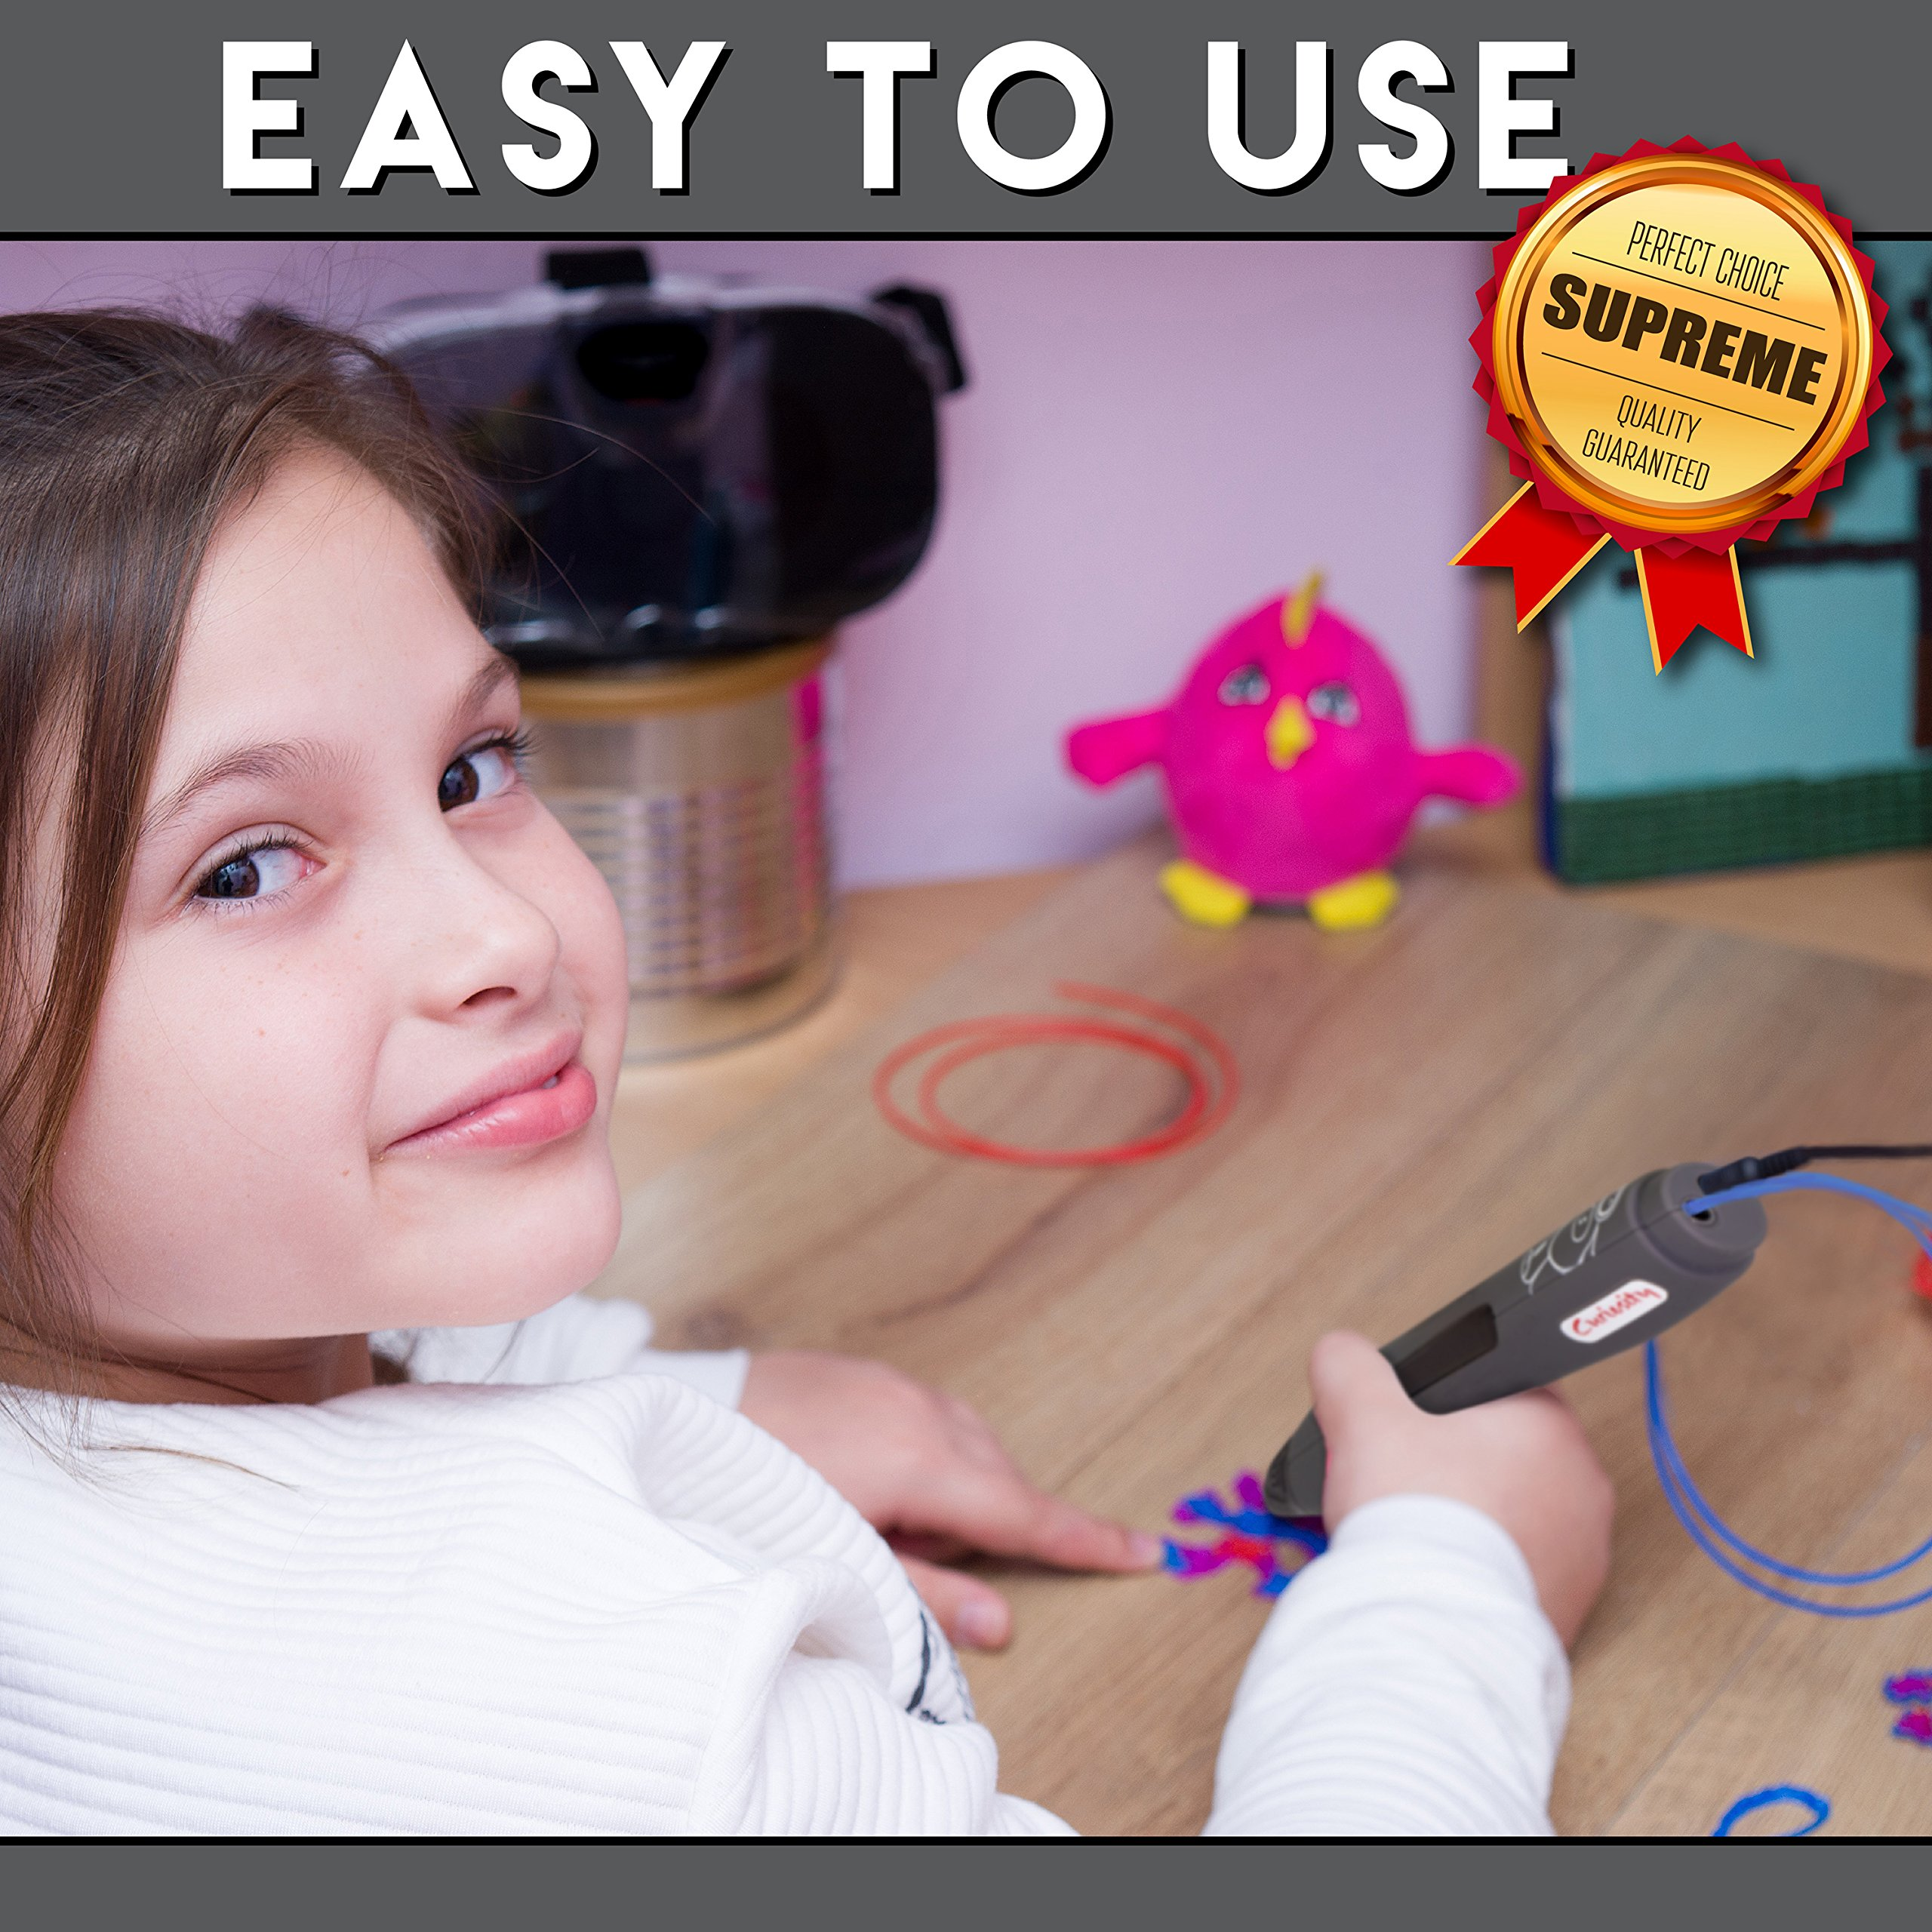 3D Printer Pen - Simple & Fun 1 Button Operation 3D Pen for Kids, Teens and Adults - Includes Two PLA Filaments, USB & BONUS Safety Shovel Tool by Curiosity